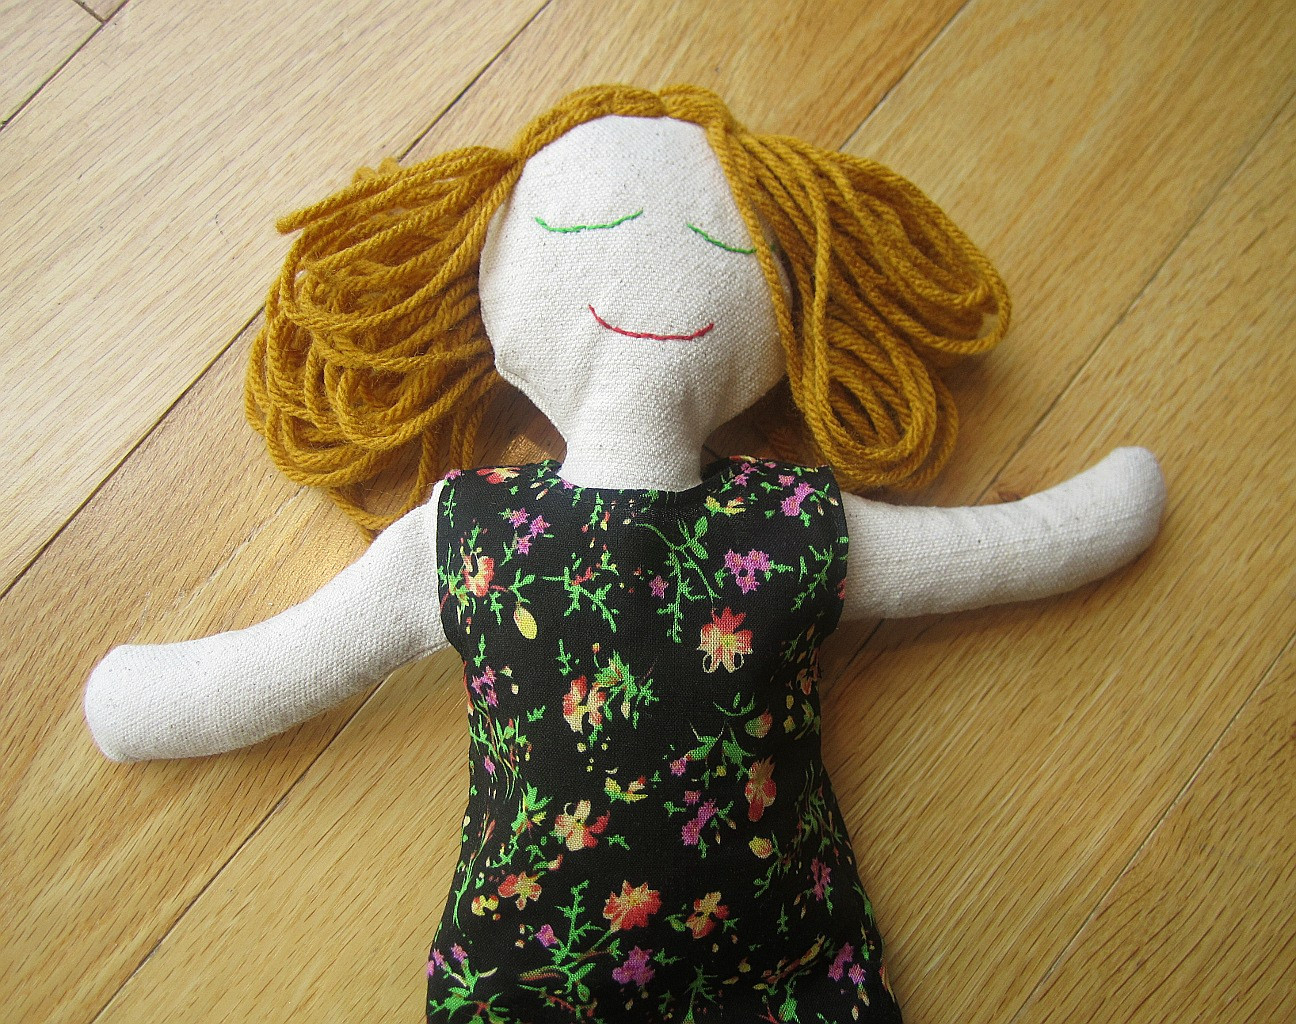 Doll Patterns Elegant Rag Doll Free Sewing Pattern and Instructions Of Doll Patterns Best Of Rag Doll Patterns